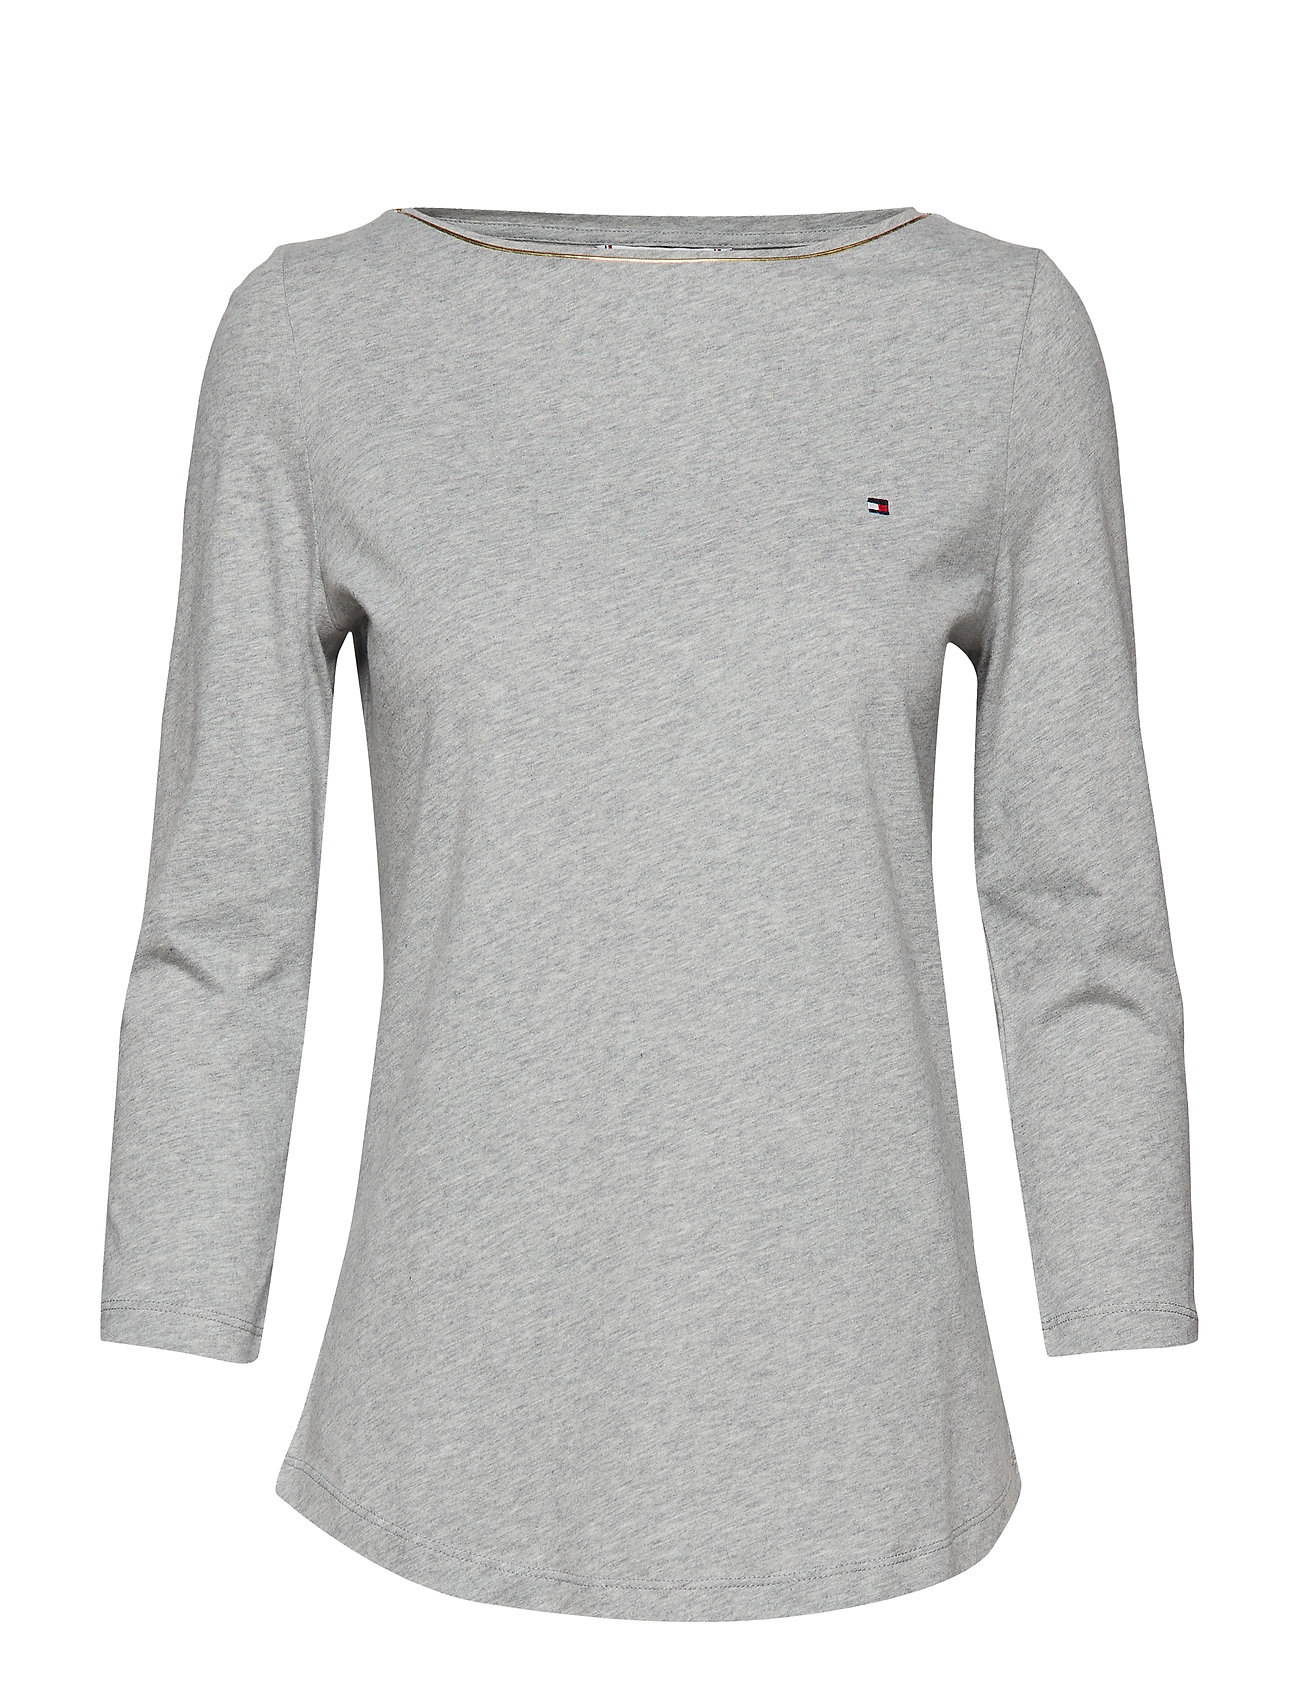 2fe610fe Lucy Boat-nk Top 3/4 (Light Grey Htr) (450 kr) - Tommy Hilfiger ...